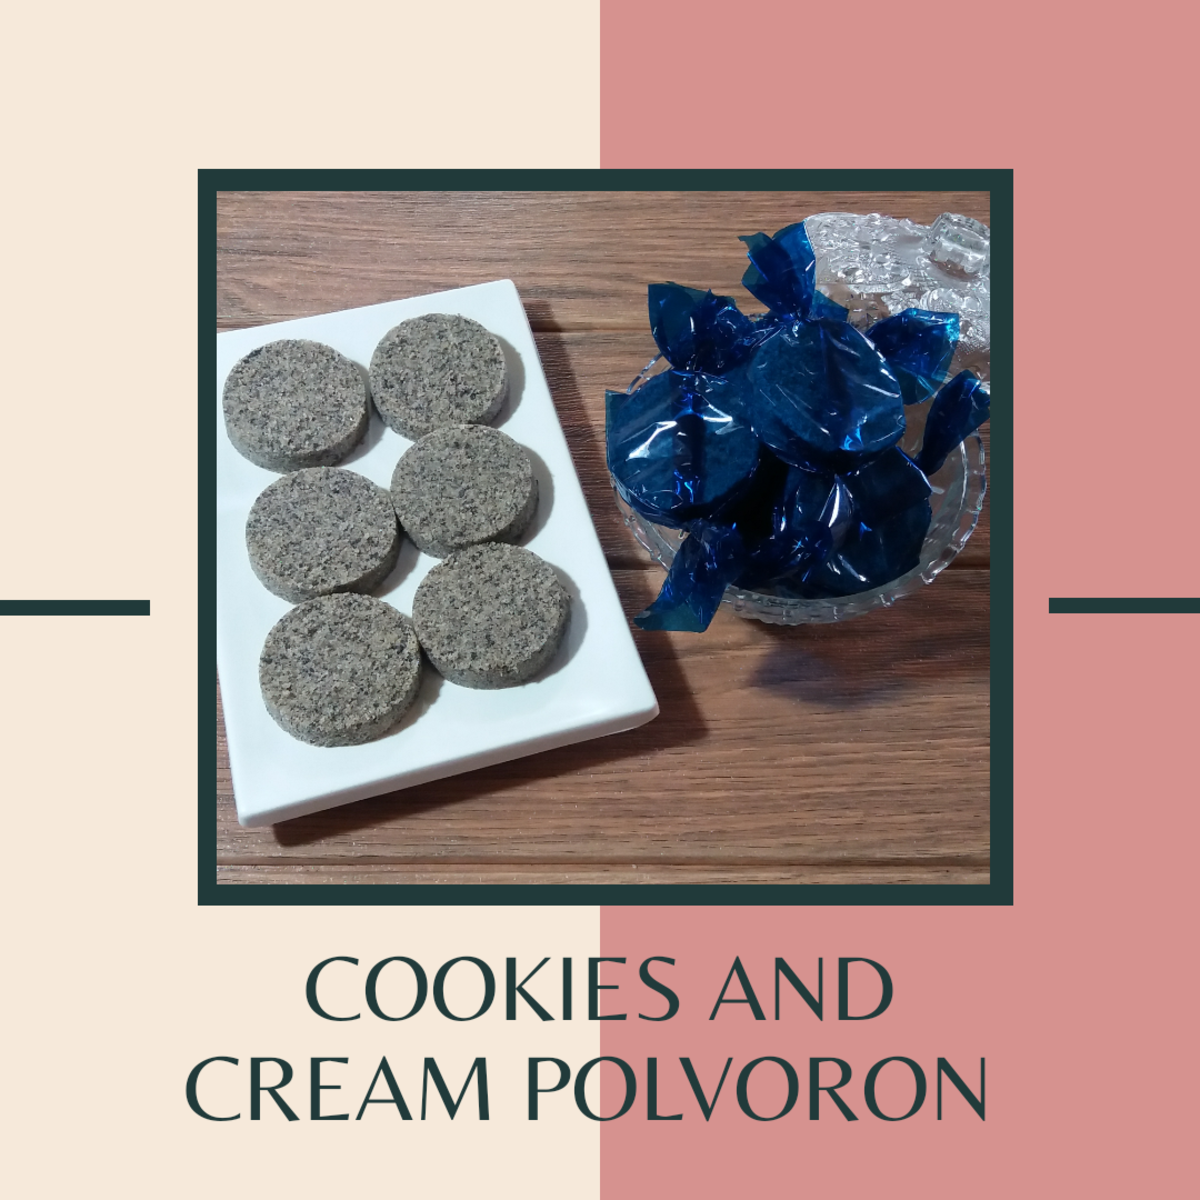 Cookies and cream polvoron